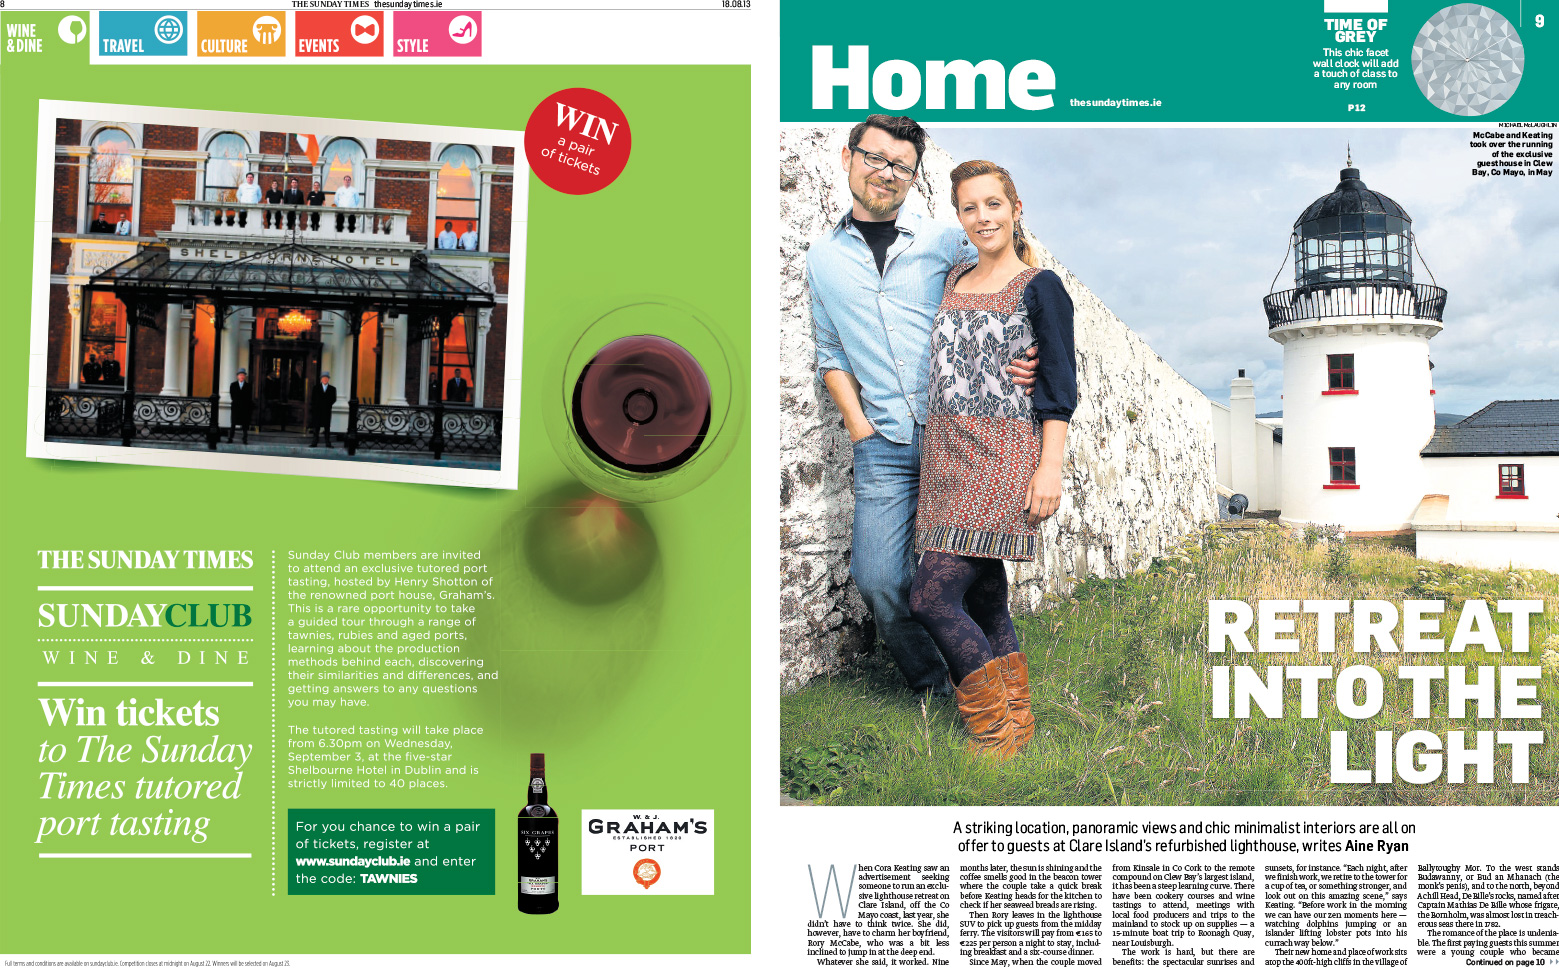 IRISH SUNDAY BOOK 18-08-2013.indd